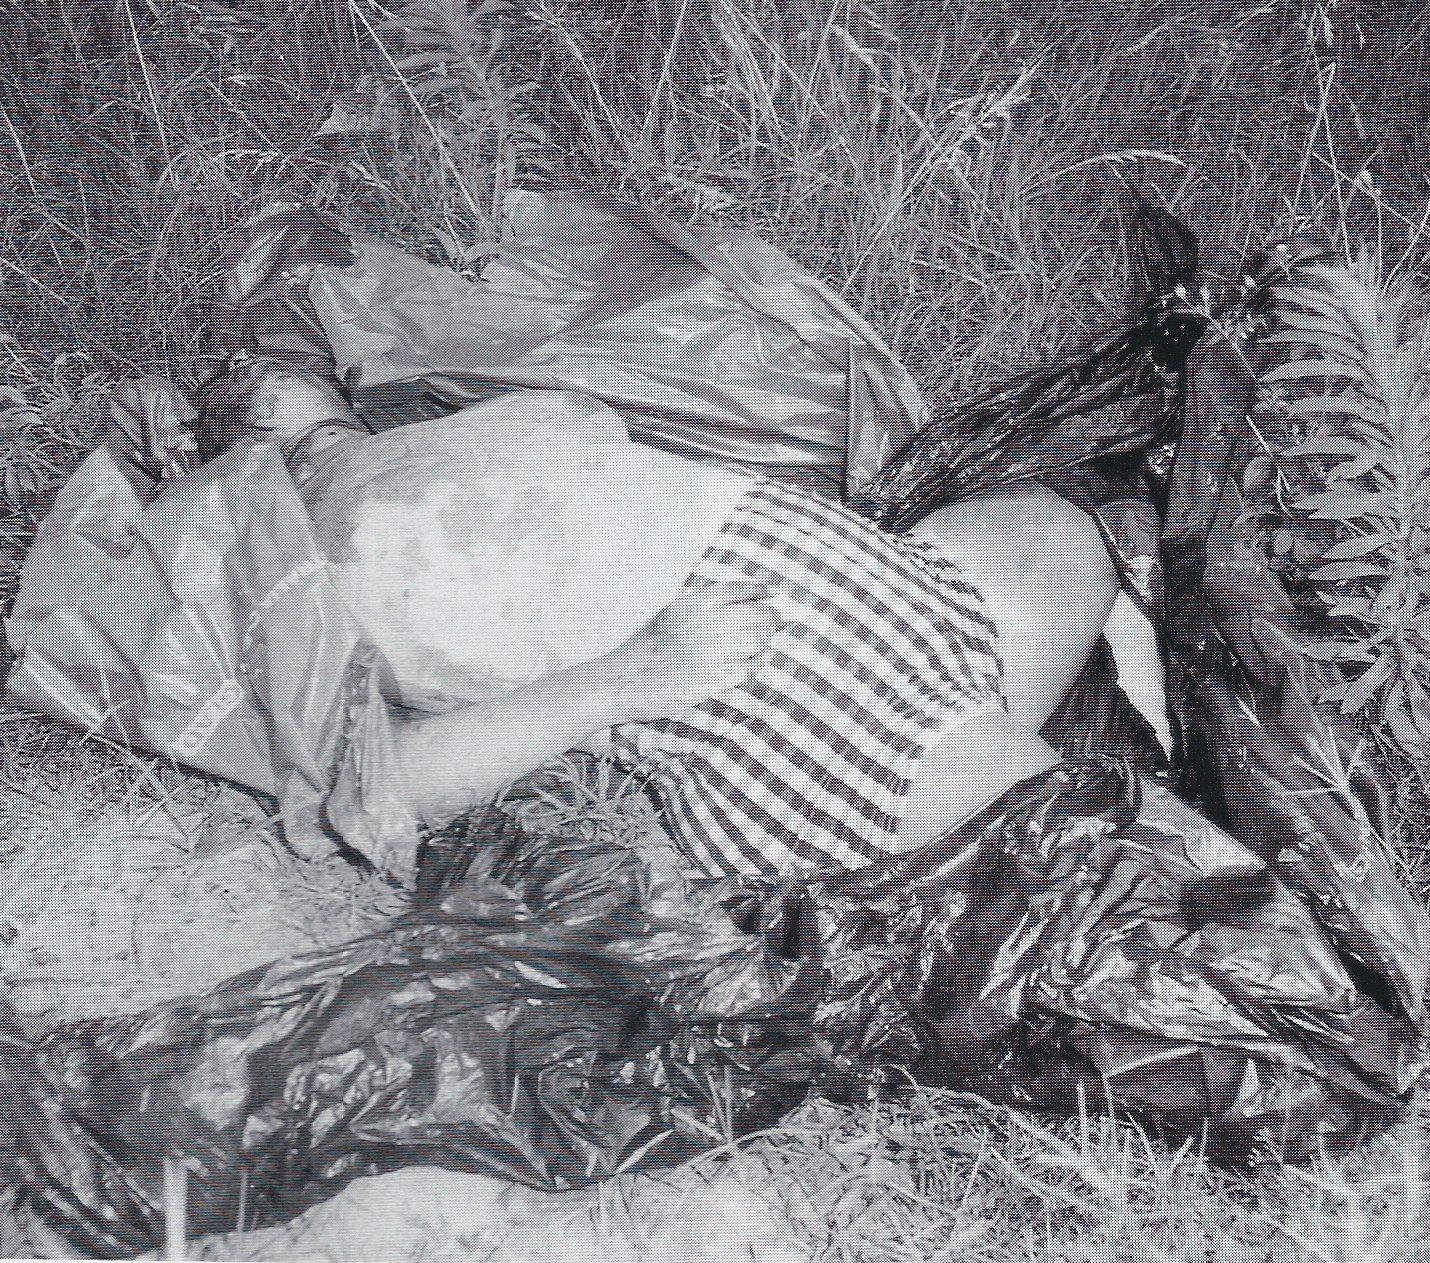 Finding Jane Doe **warning – graphic photos** | Killers Without